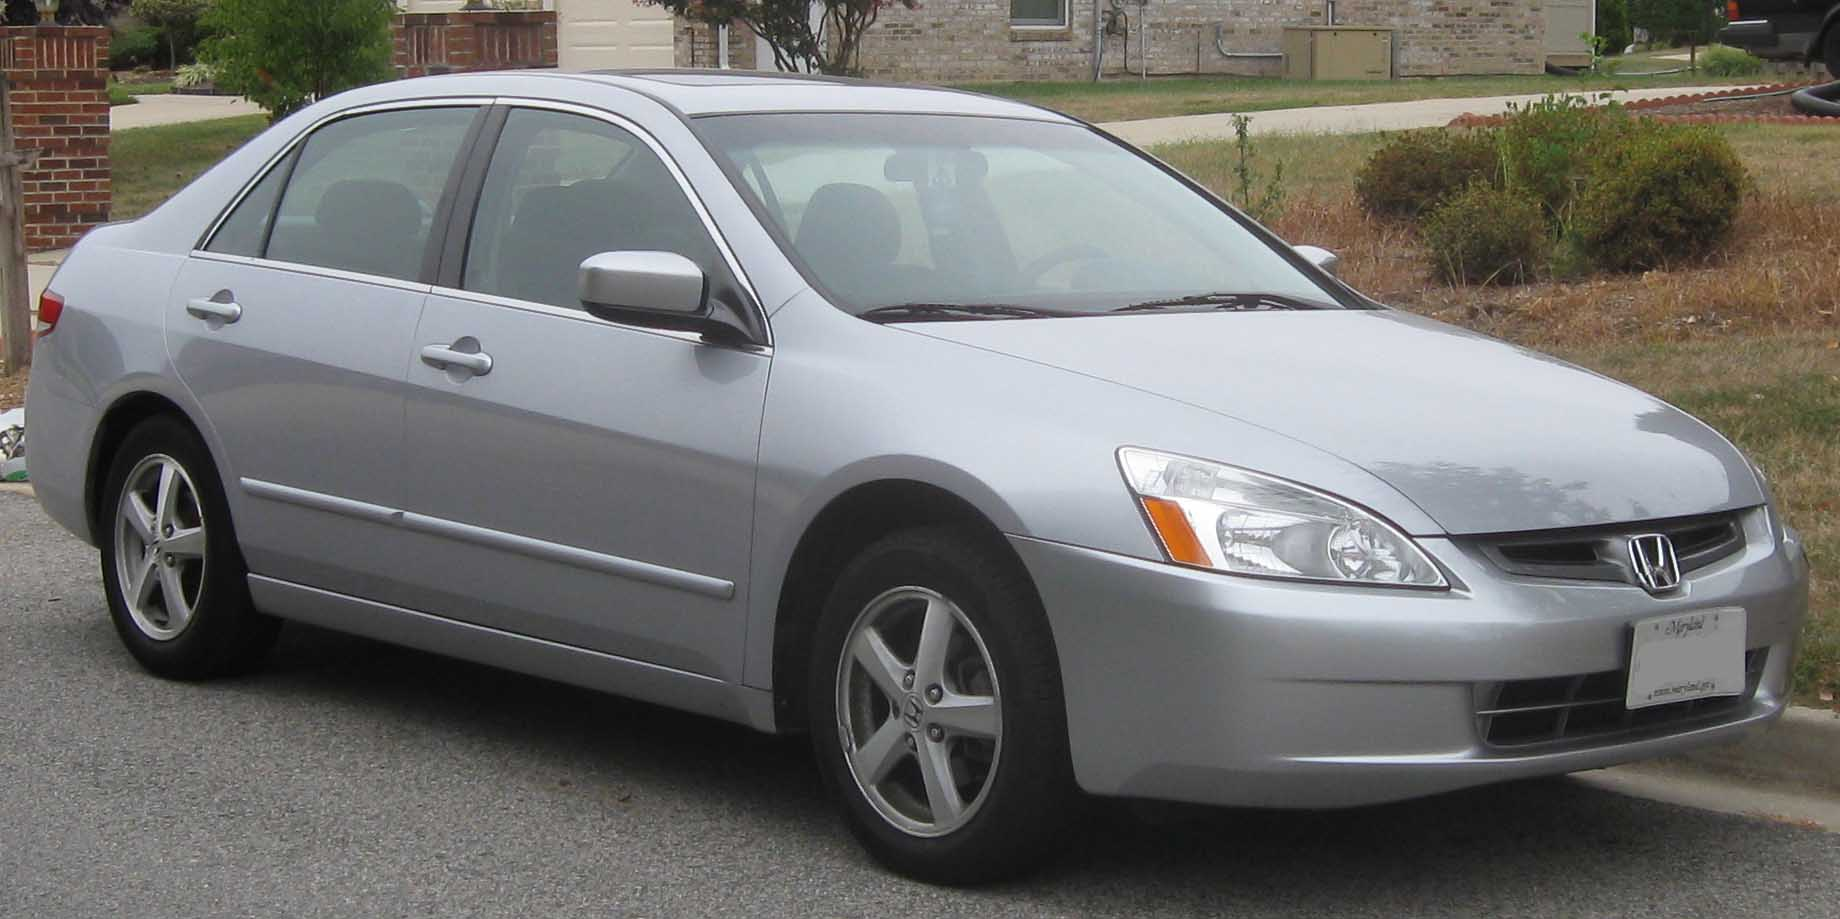 2004 Honda Accord #11